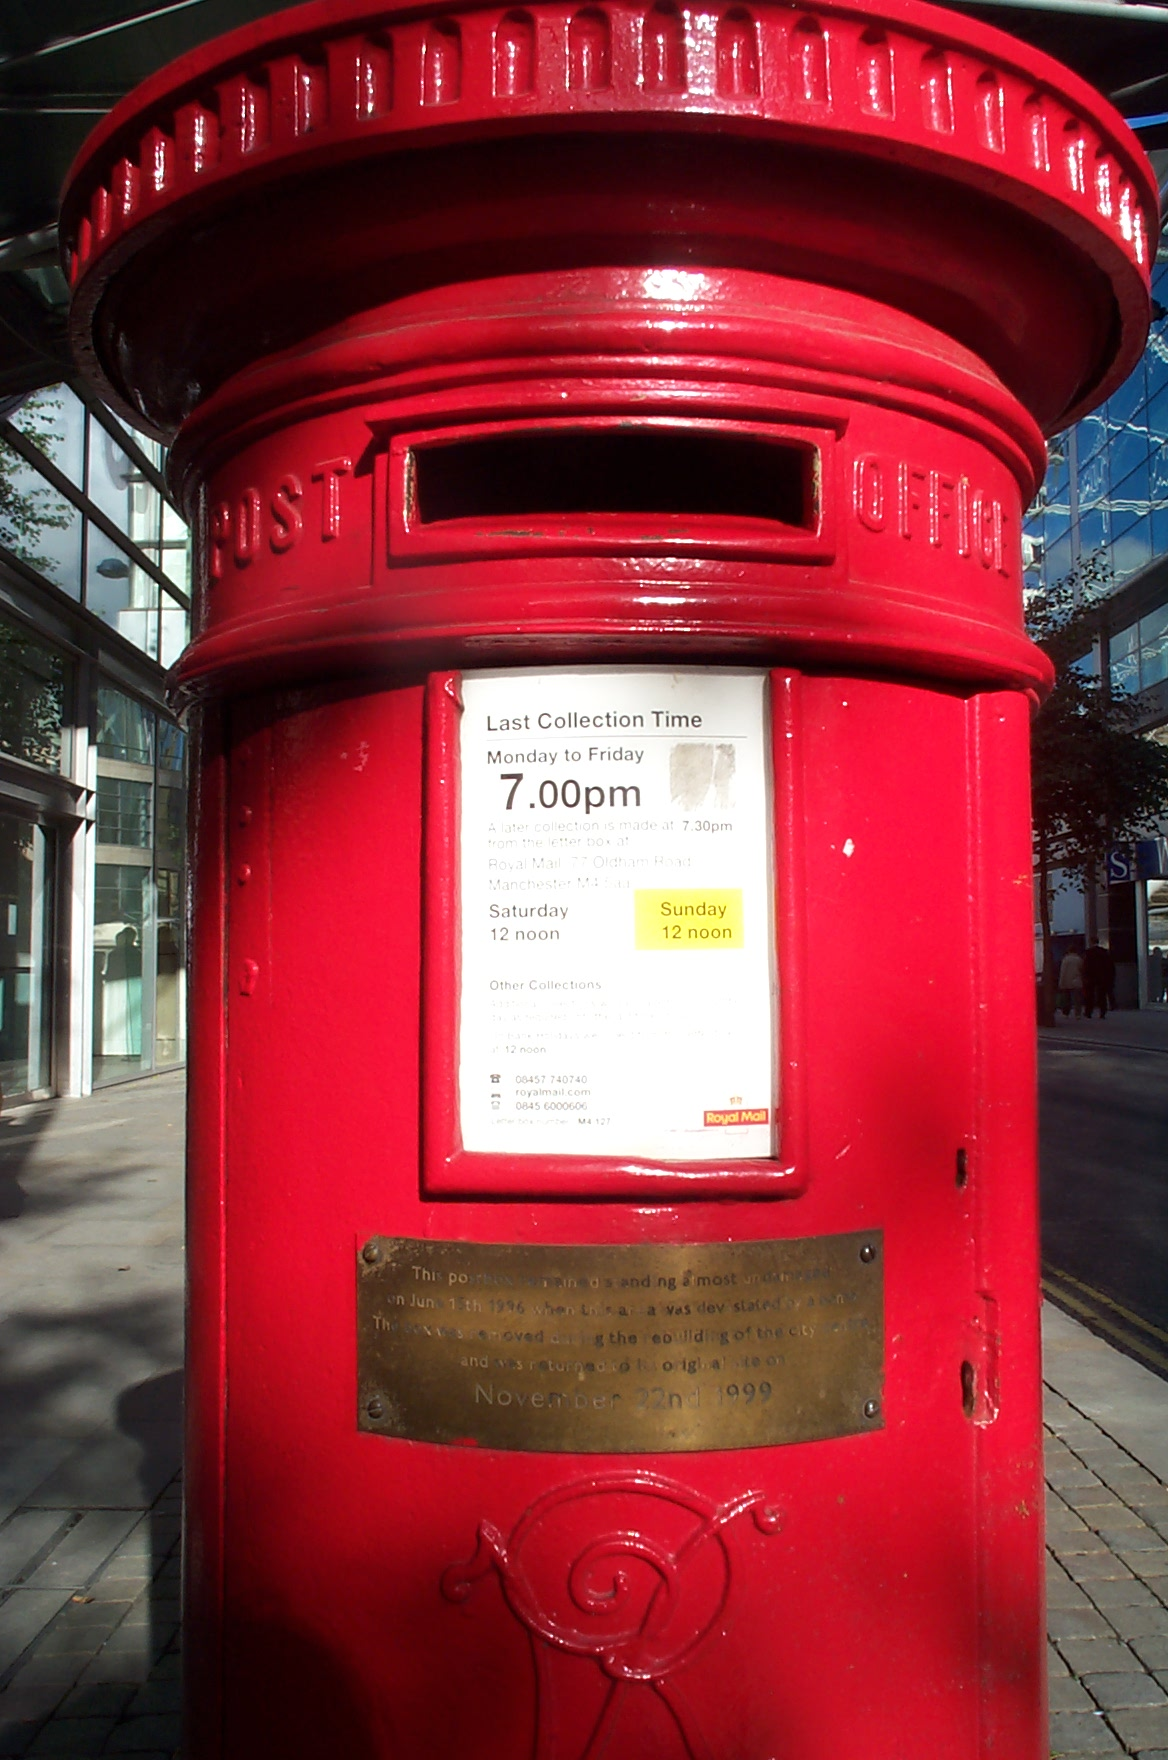 Surviving postbox from the Manchester 1996 IRA Bomb